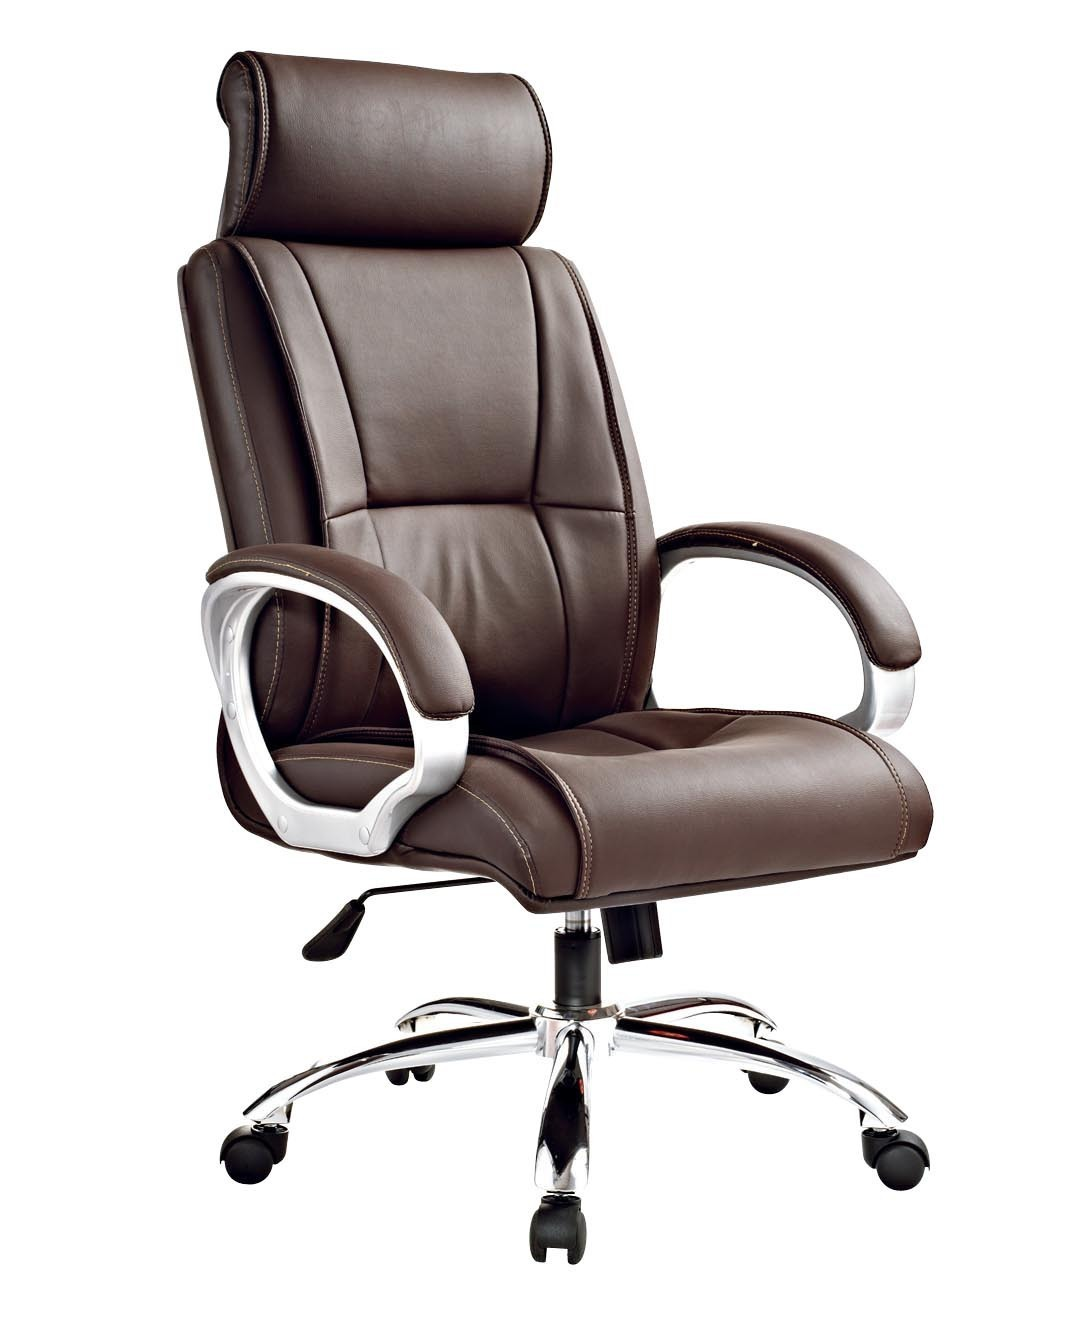 European Xiang Jin Furniture Can Happy Swivel Ergonomic Home Computer To Work In An Office Chair